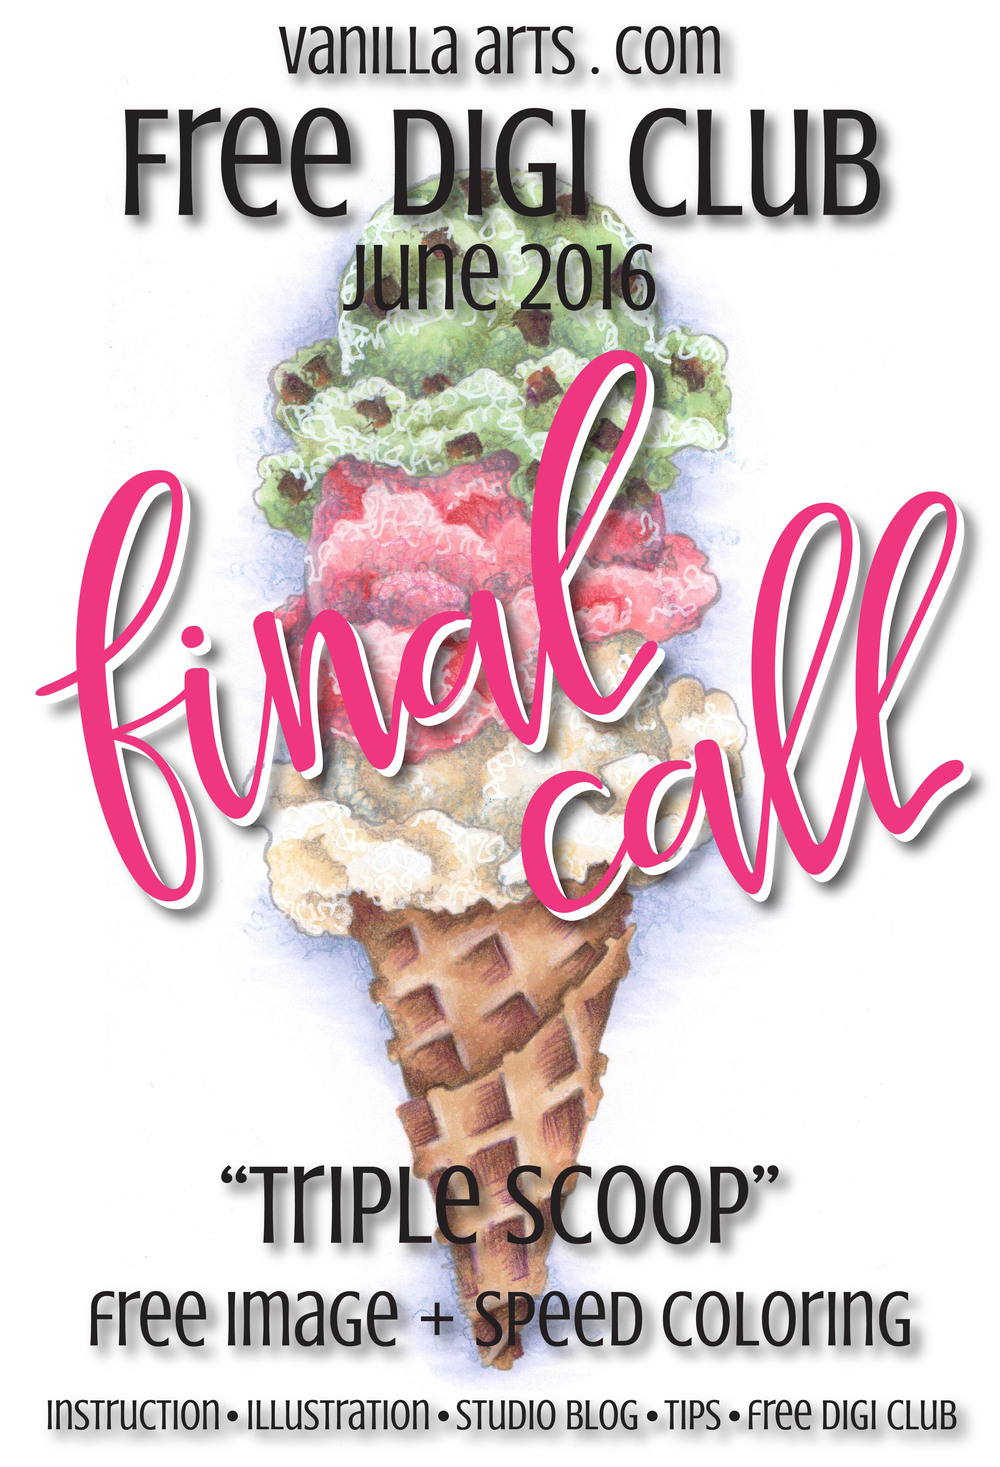 Final Call on July Free Digi Club Image. Get your copy at VanillaArts.com